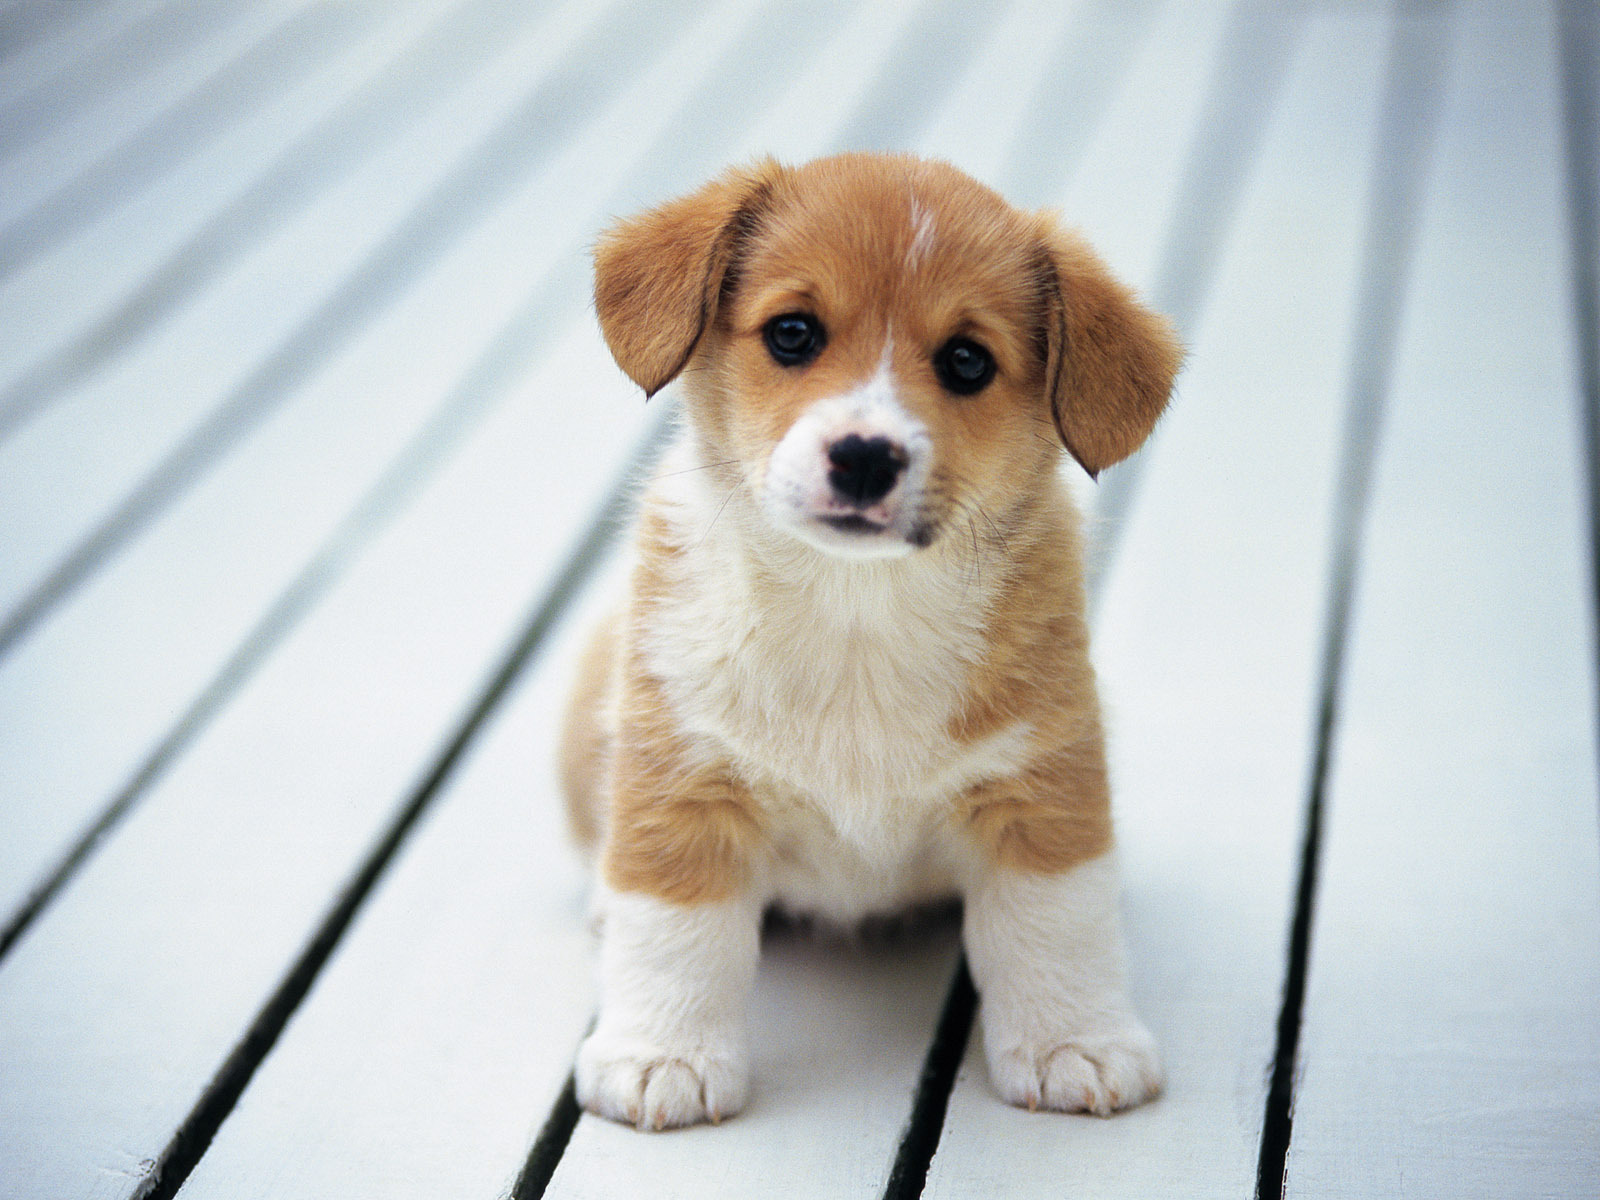 Cute puppy videos cutepuppiesu on pinterest